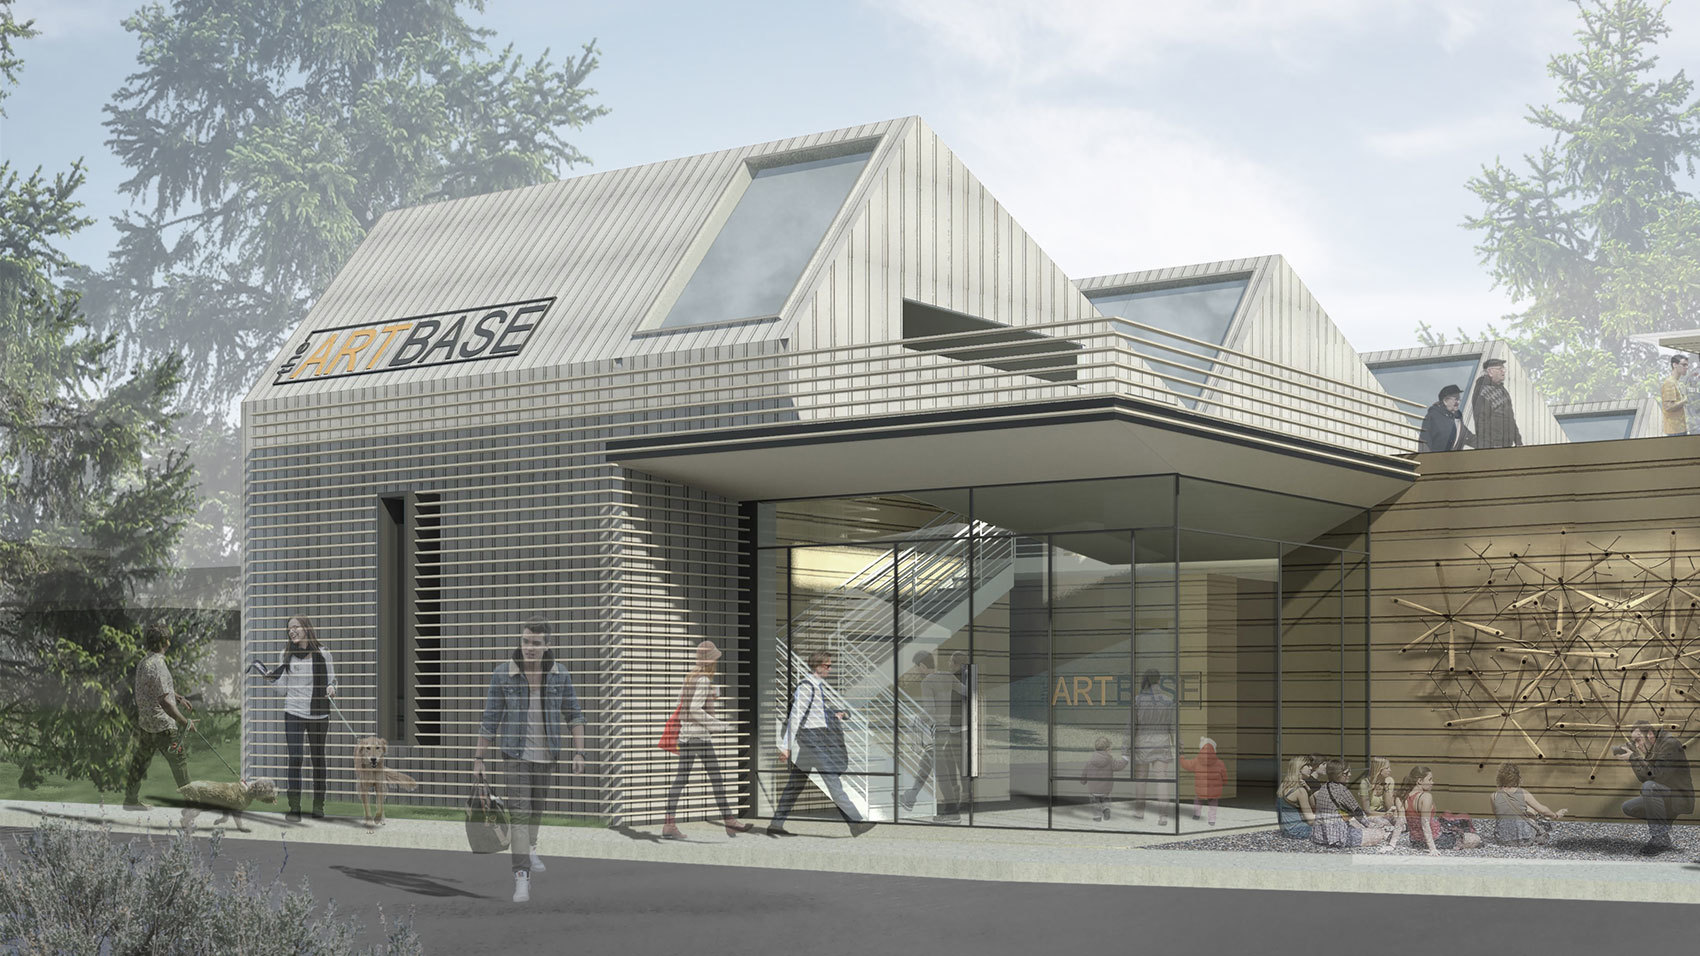 Conceptual design for The Art Base in Basalt, Colorado